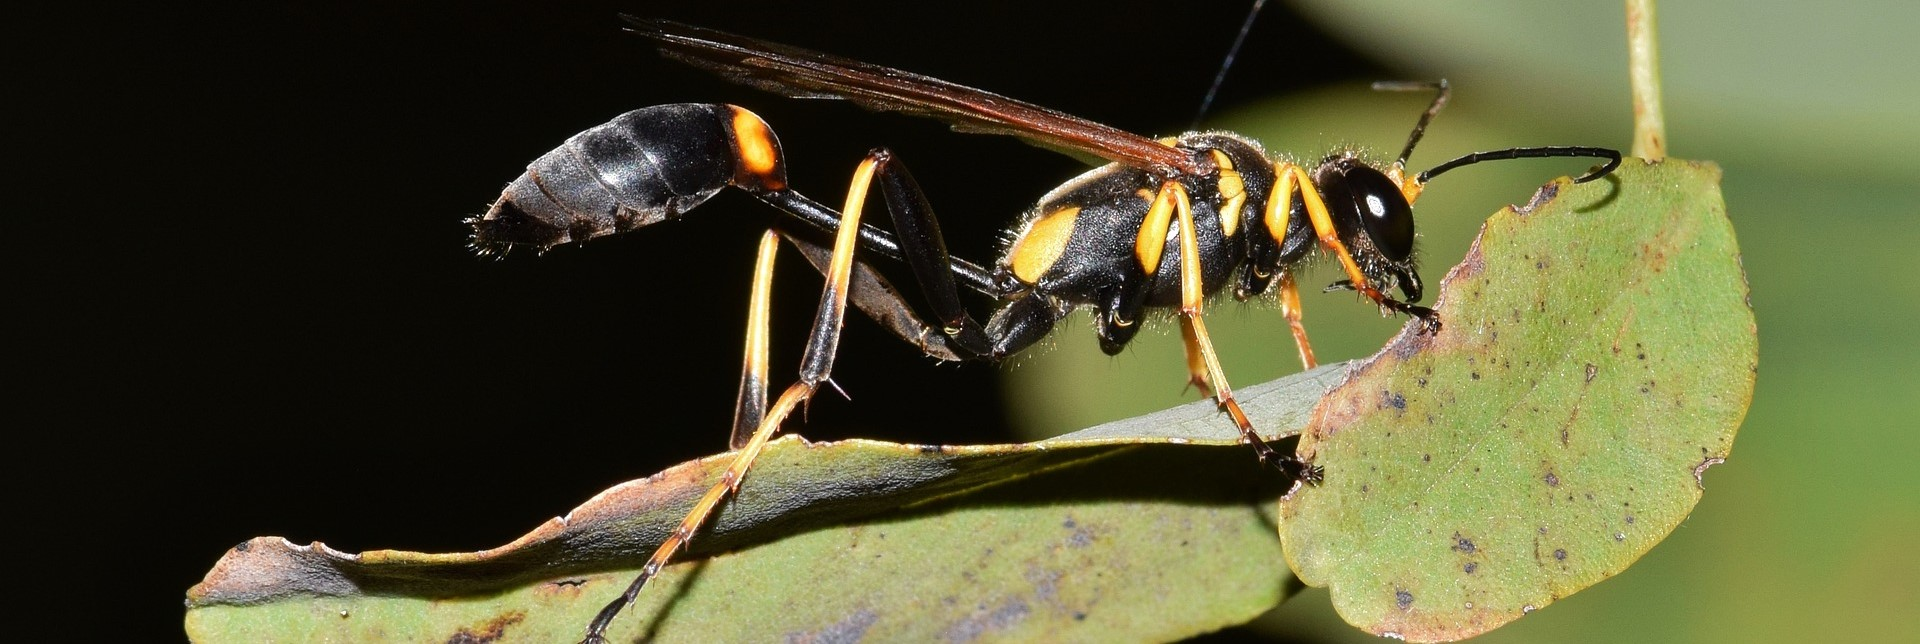 Image of black and yellow mud dauber on leaf